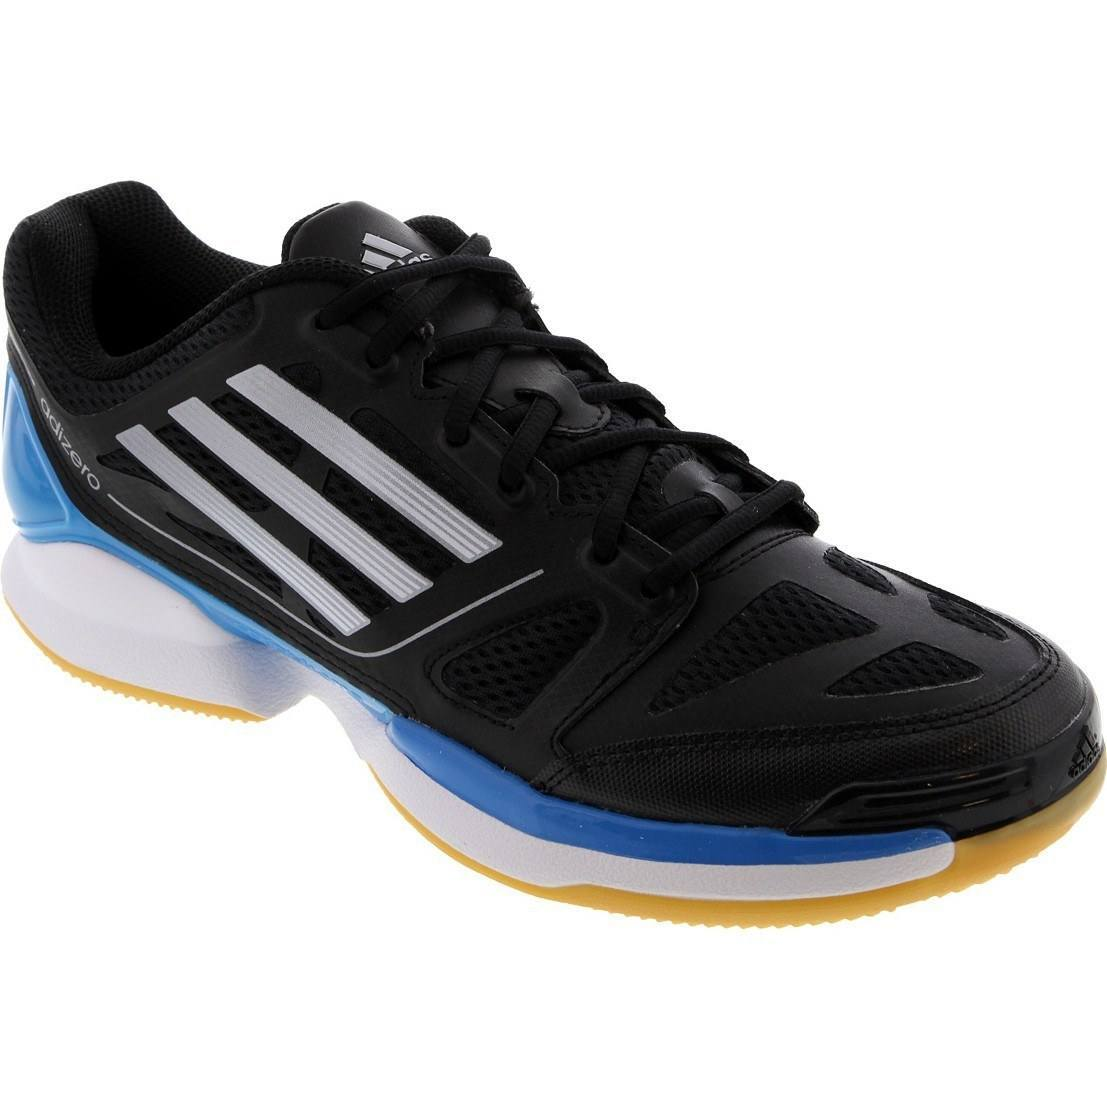 Adidas Adizero Crazy Volley Pro Men - Black Blue